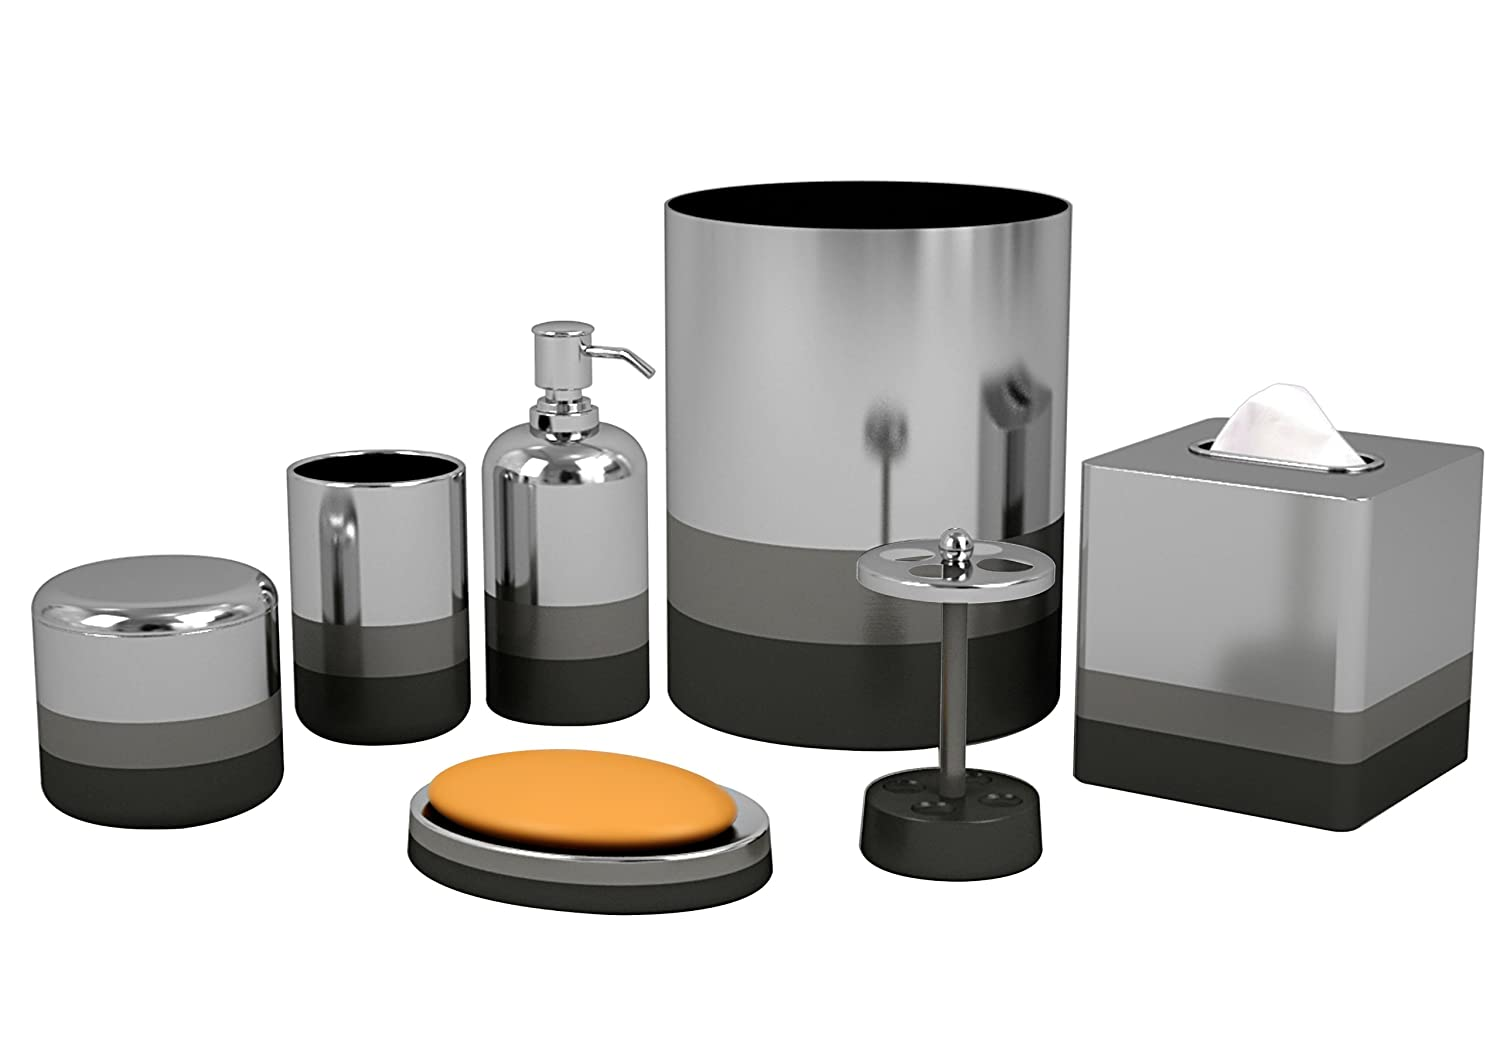 Captivating Amazon.com: Nu Steel Triune Bathroom Accessories Set ,7 Piece: Home U0026  Kitchen